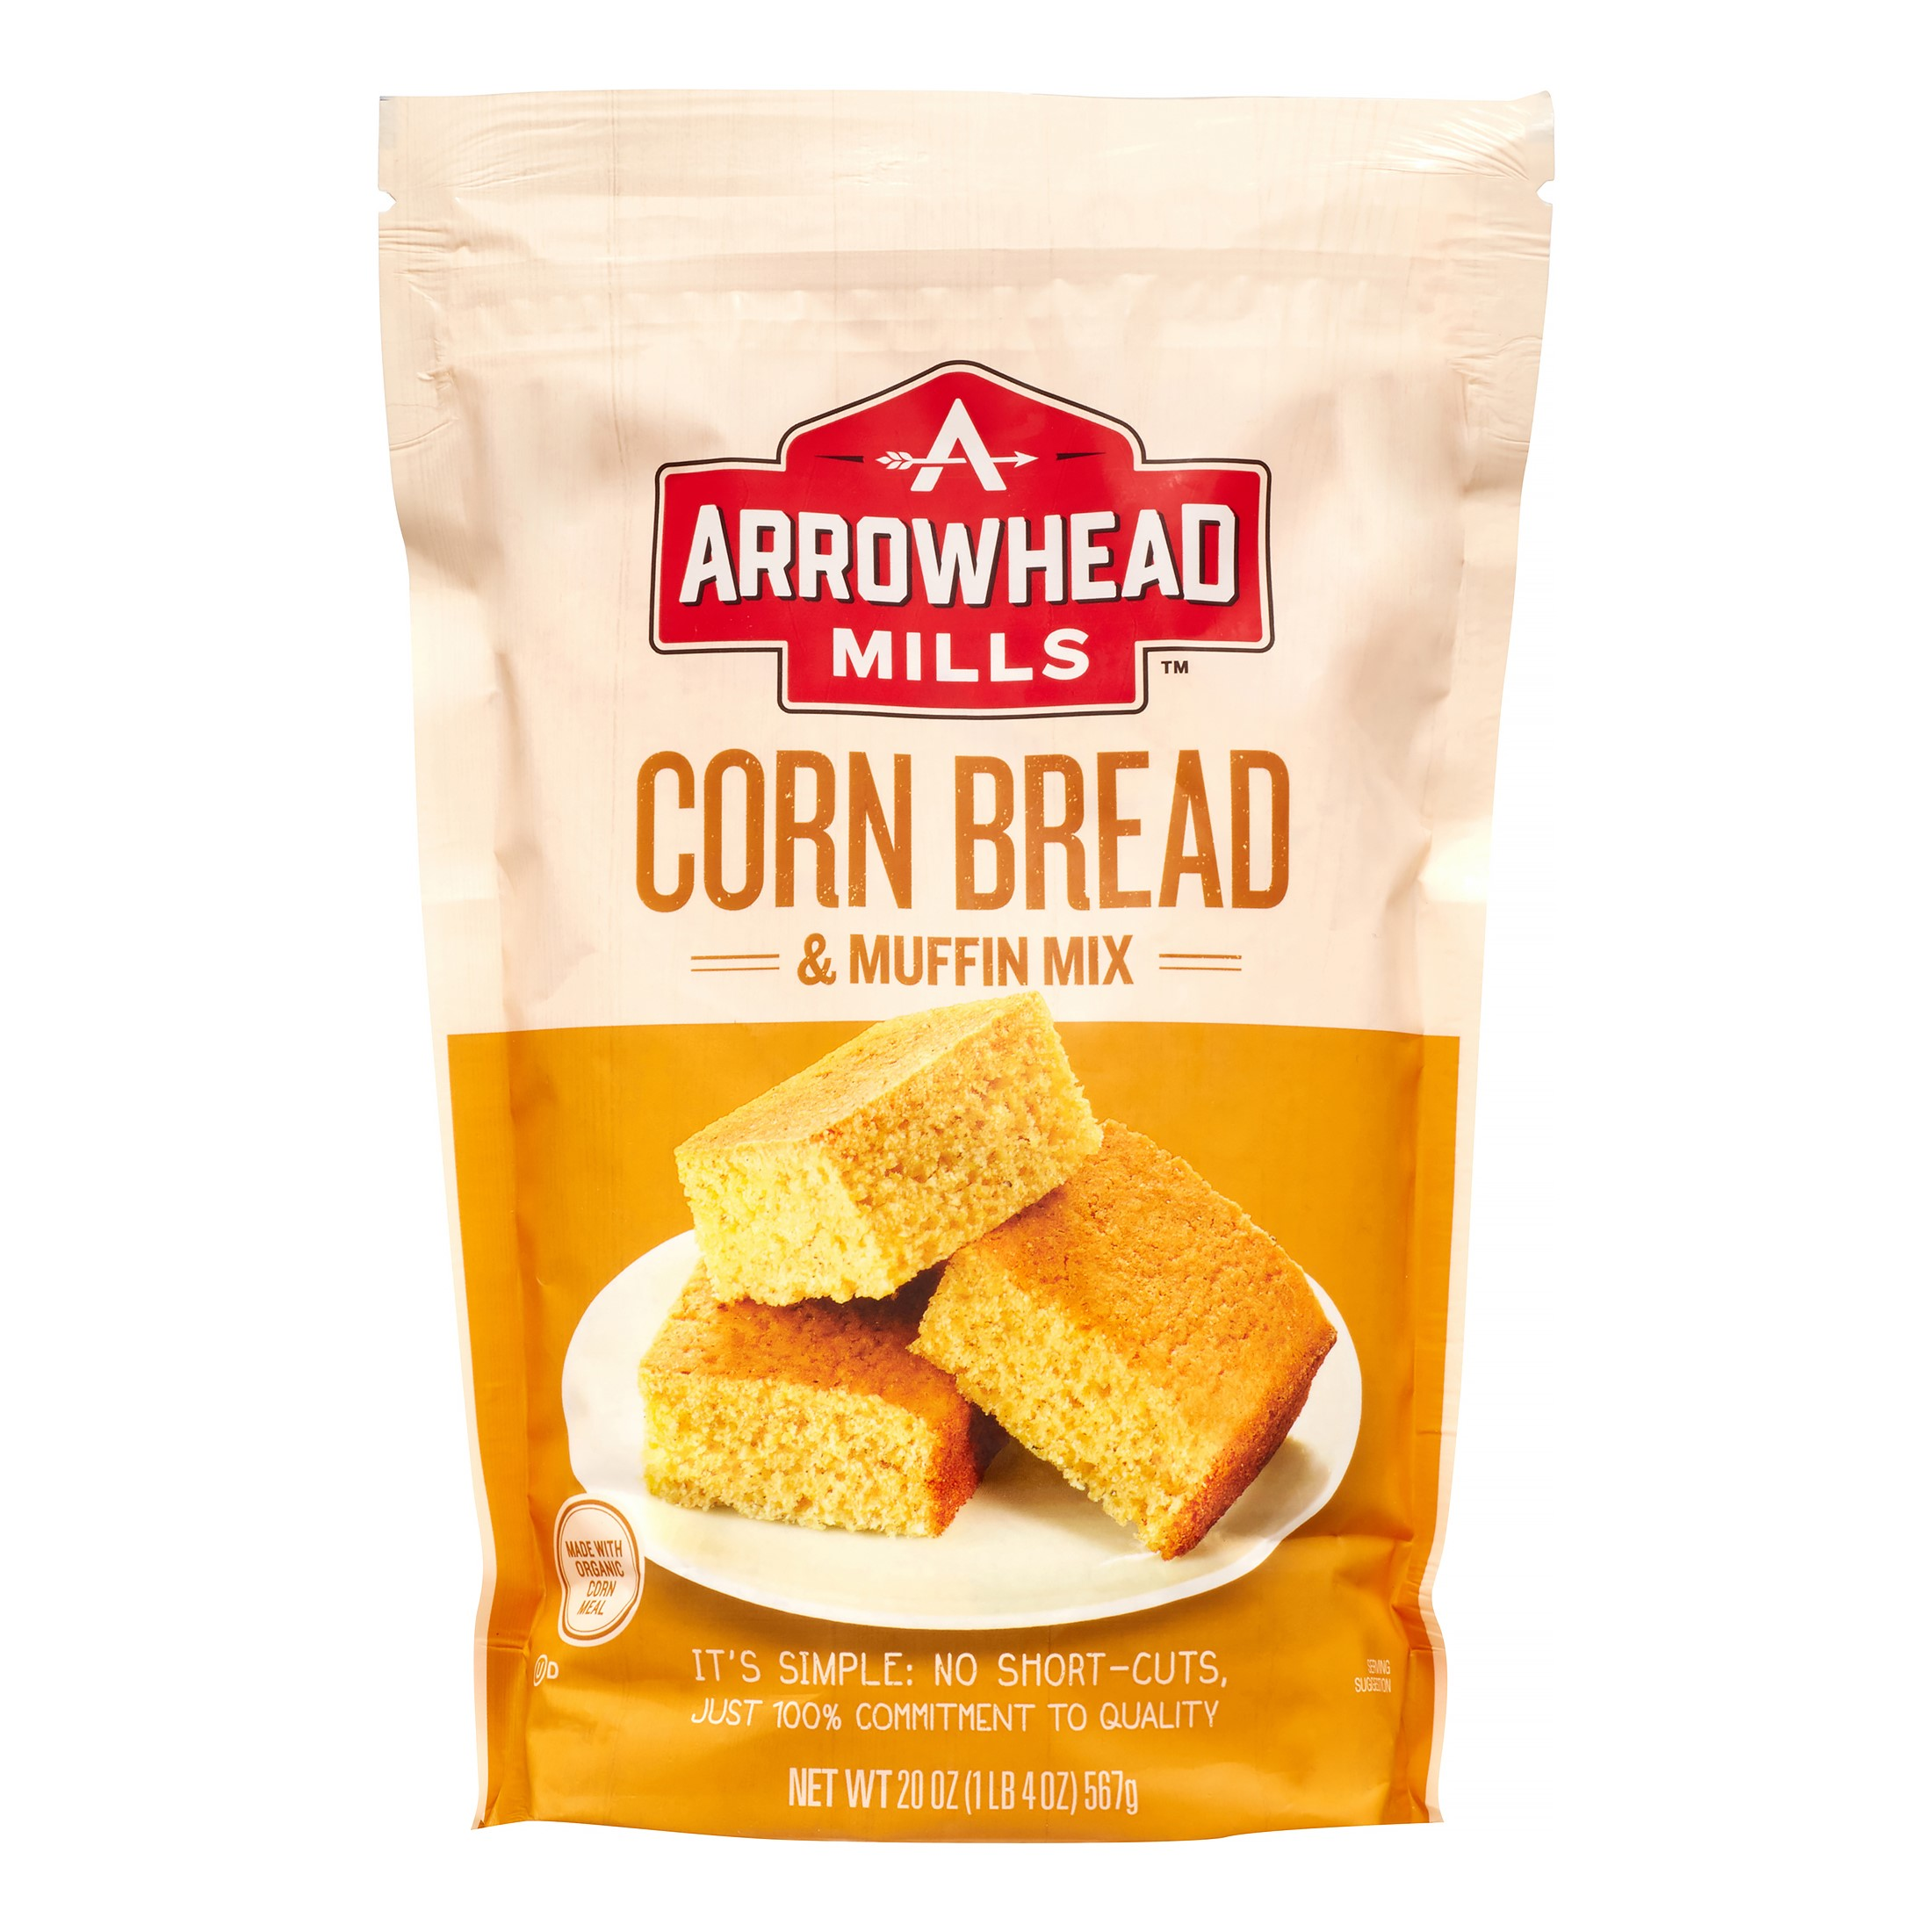 Arrowhead Mills Corn Bread and Muffin Mix, 20 Oz by Hain Celestial